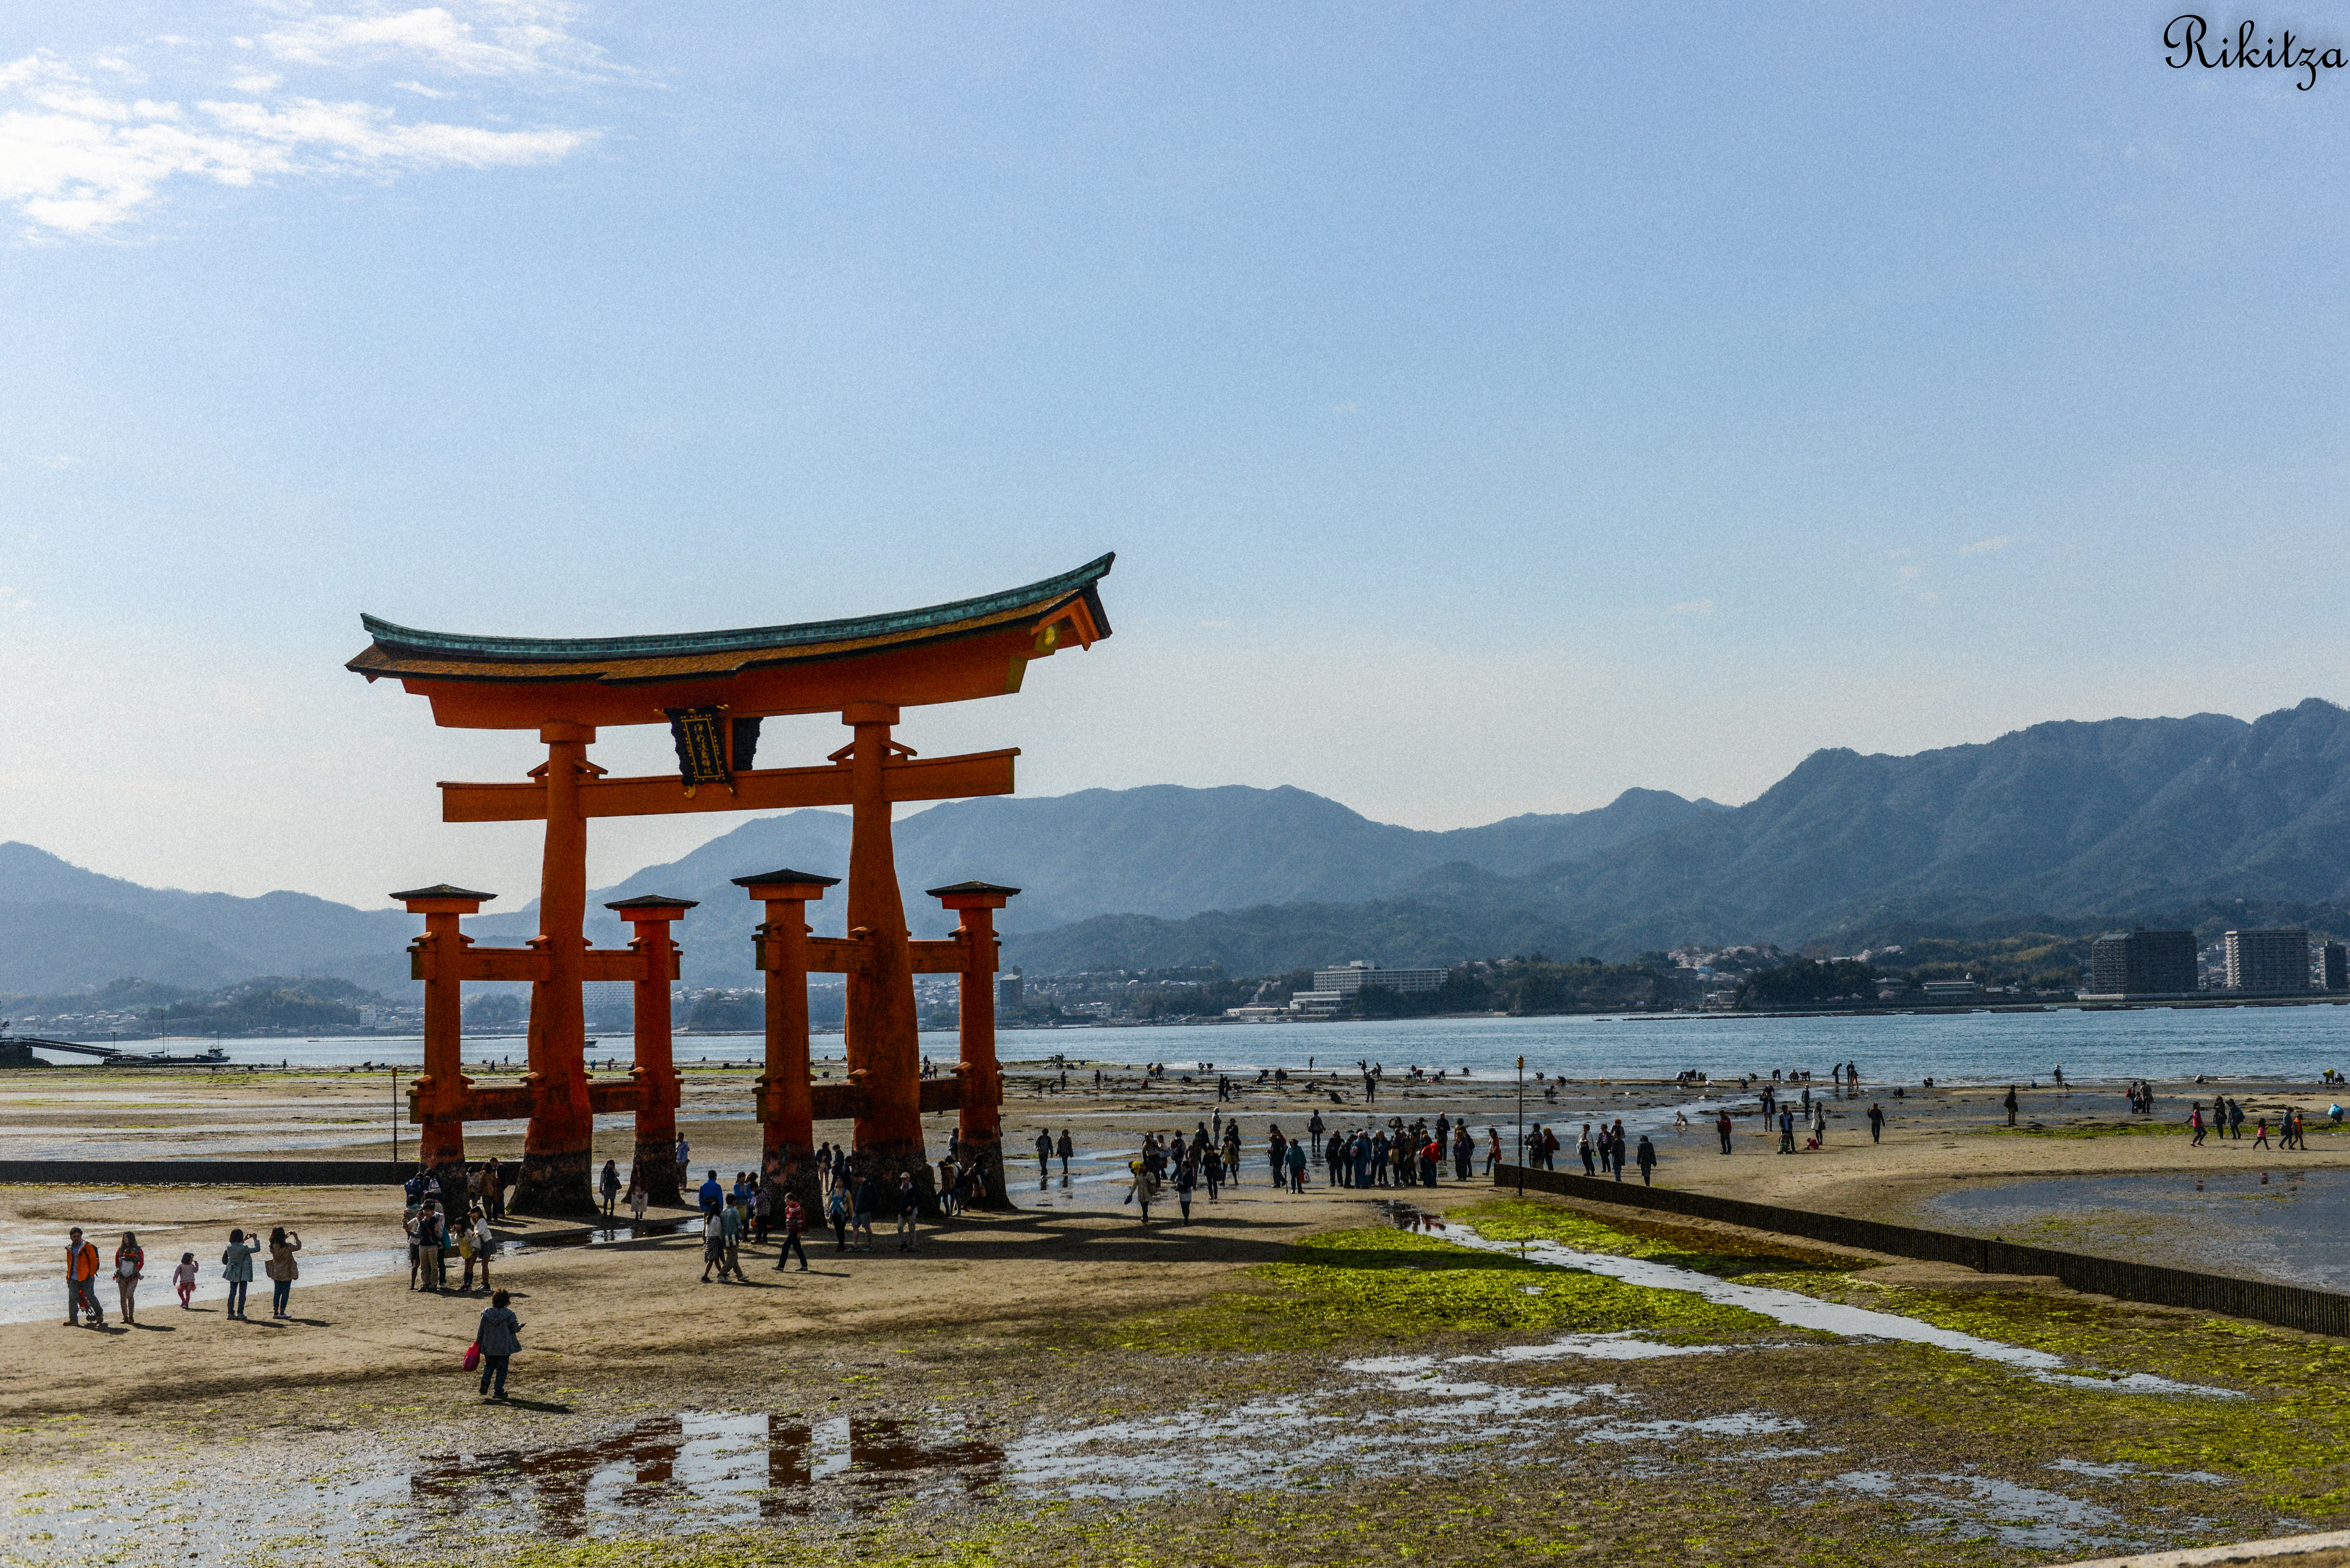 floating torii gate - Miyajima under reflux by Rikitza